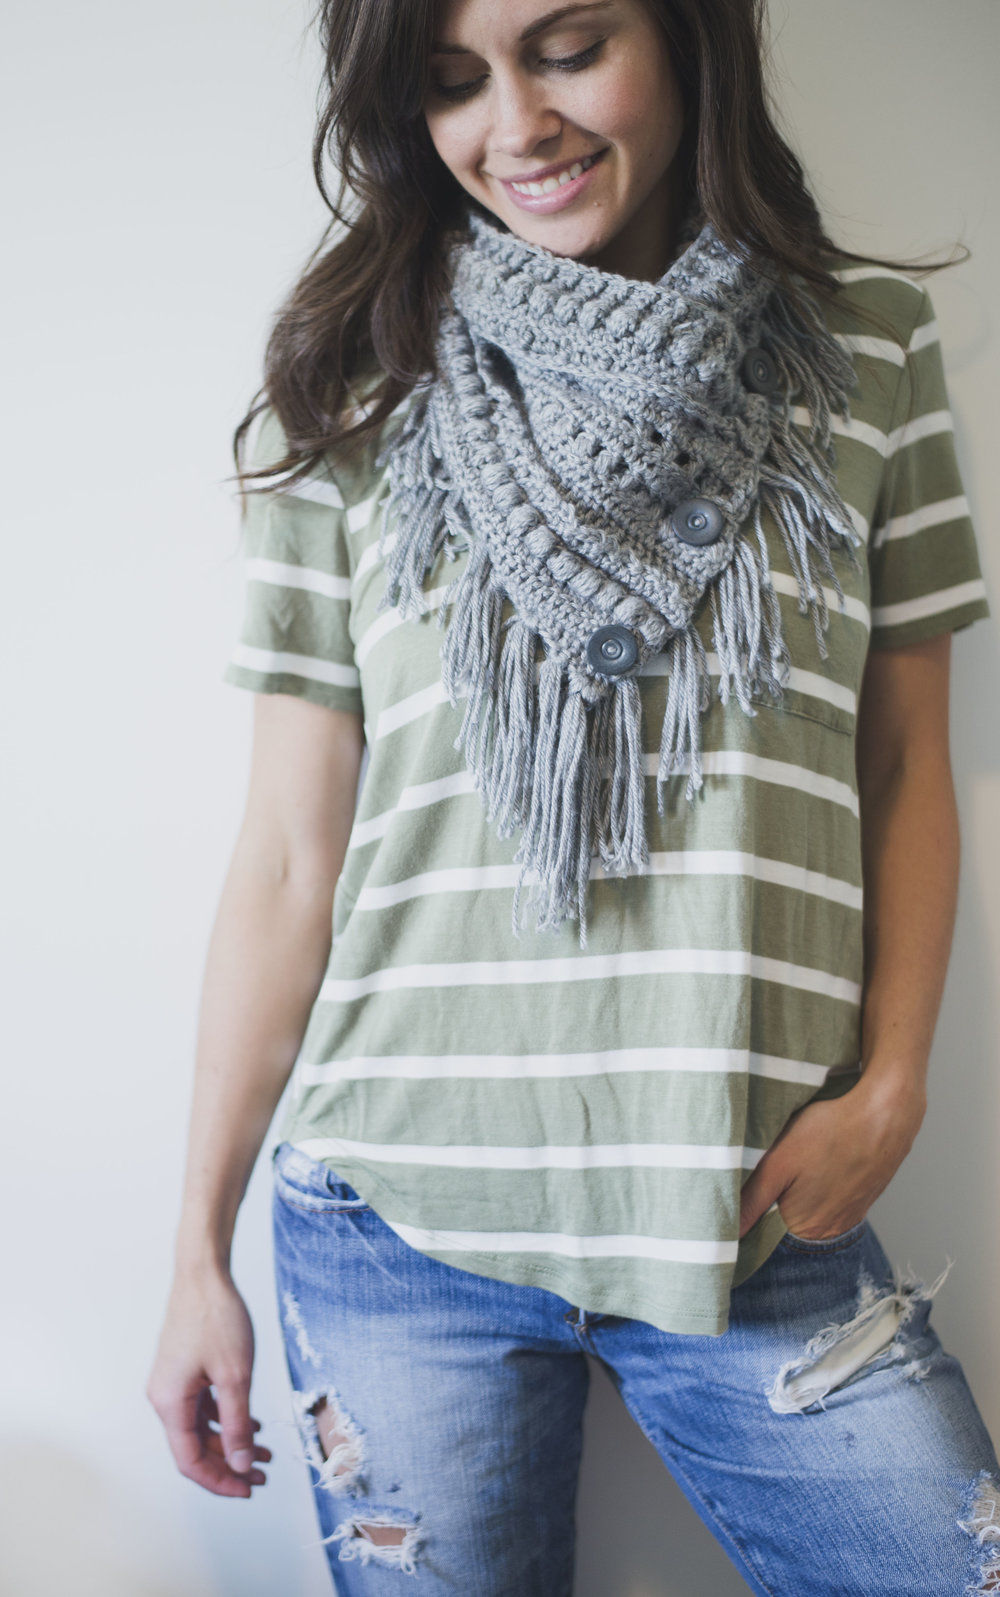 Free Crochet Pattern for the Textured Boho Cowl — Megmade with Love